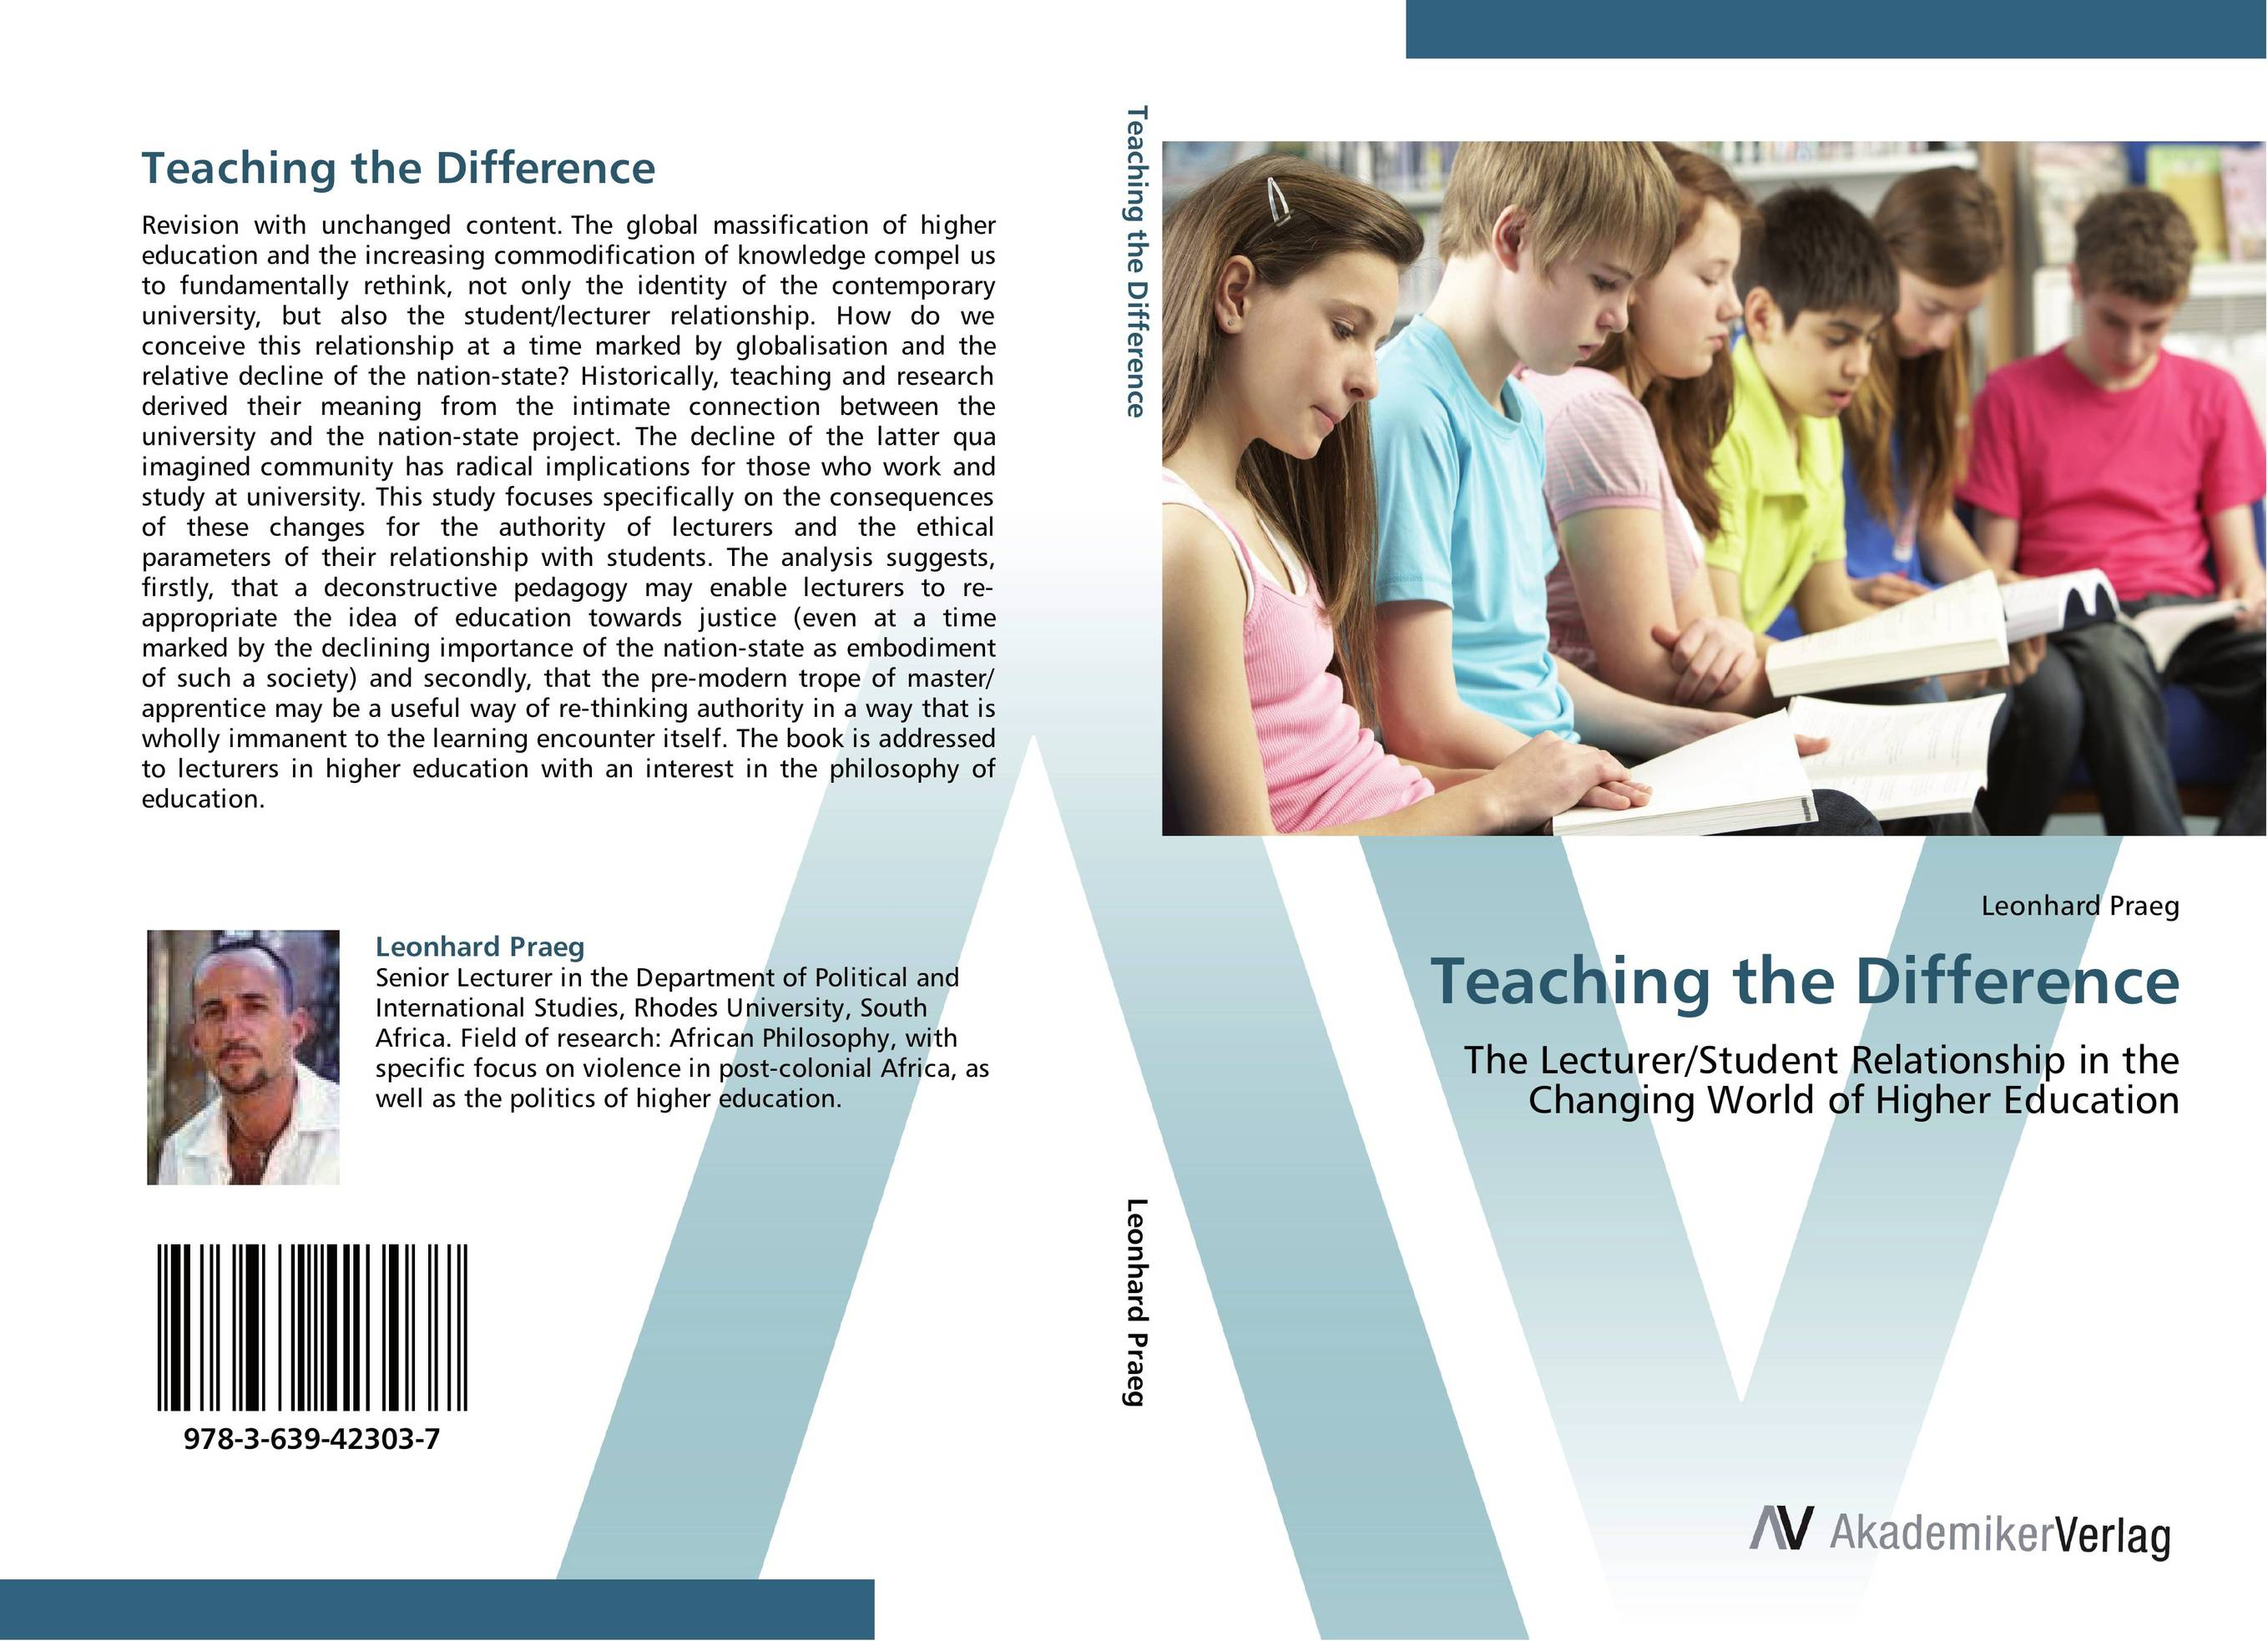 Teaching the Difference affair of state an